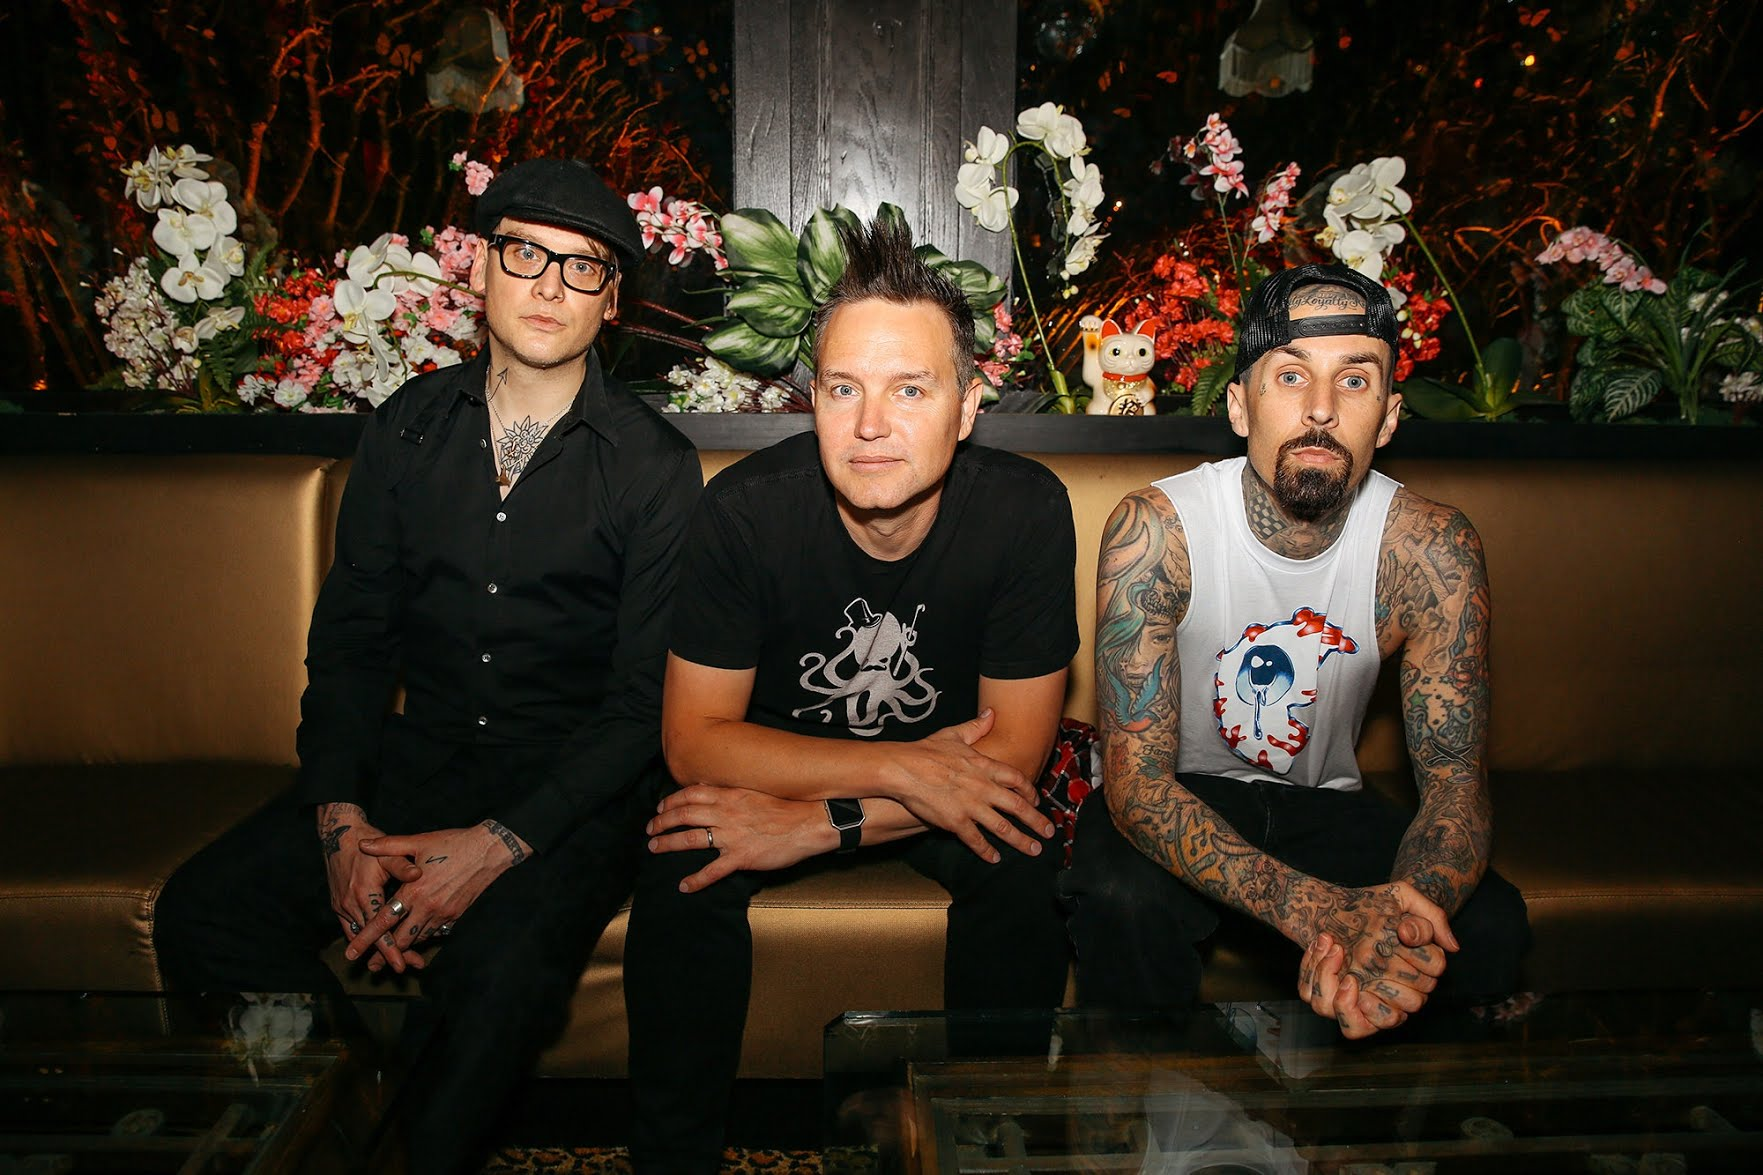 A reconfigured version of the nineties band Blink-182—featuring Matt Skiba (standing in for Tom DeLonge), Mark Hoppus, and Travis Barker—is enjoying renewed popularity among a younger generation of fans.